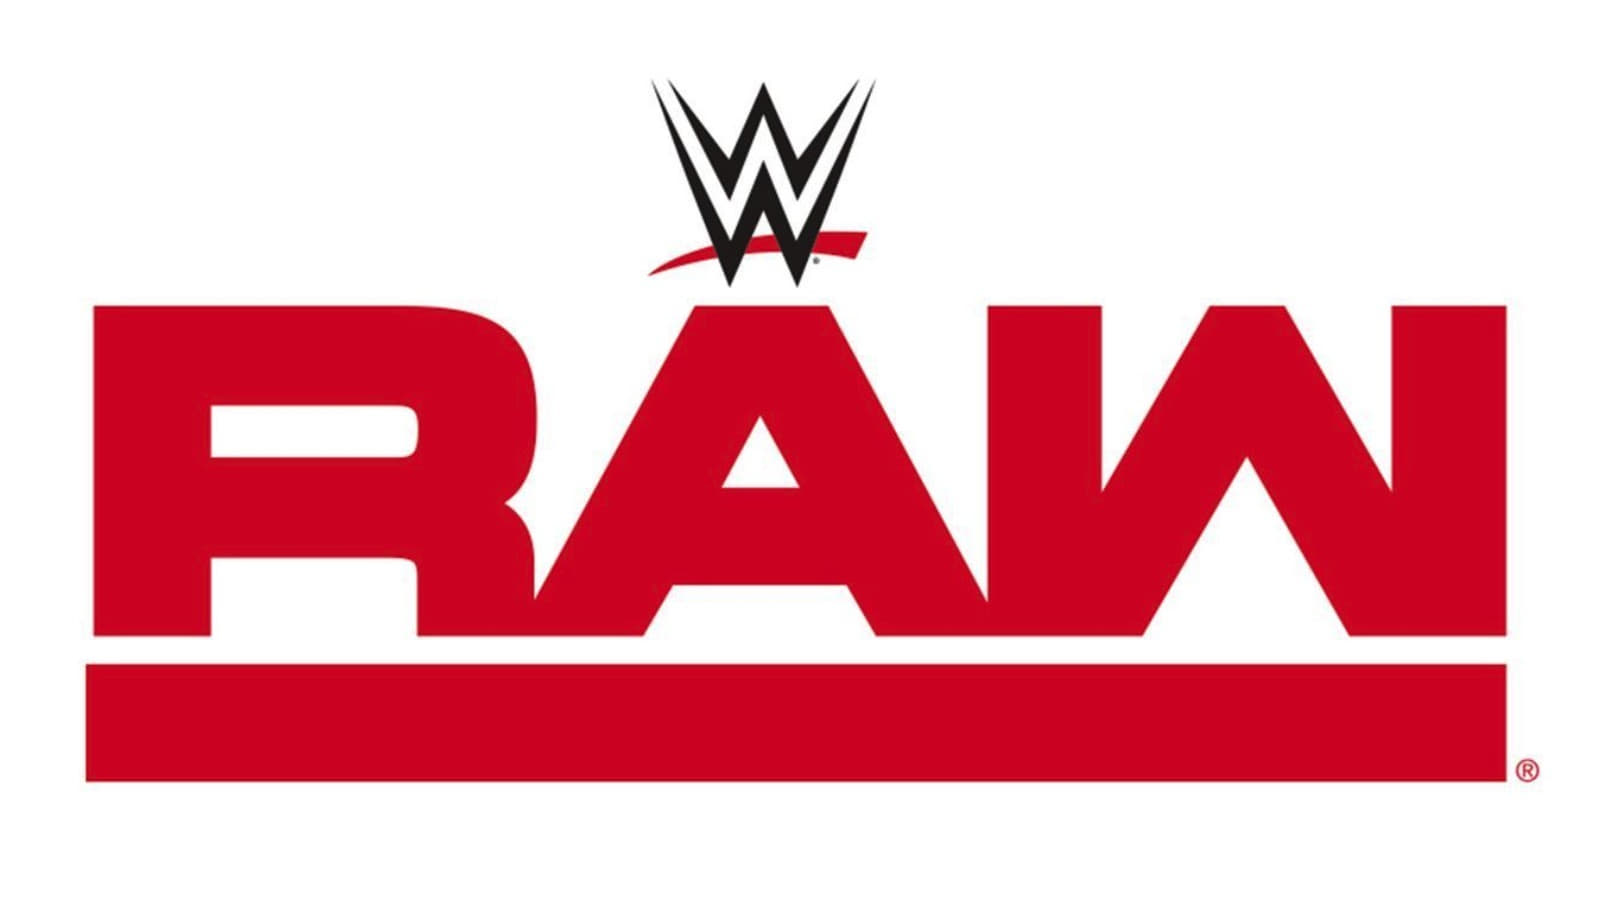 WWE Raw - Season 5 Episode 23 : RAW is WAR 213